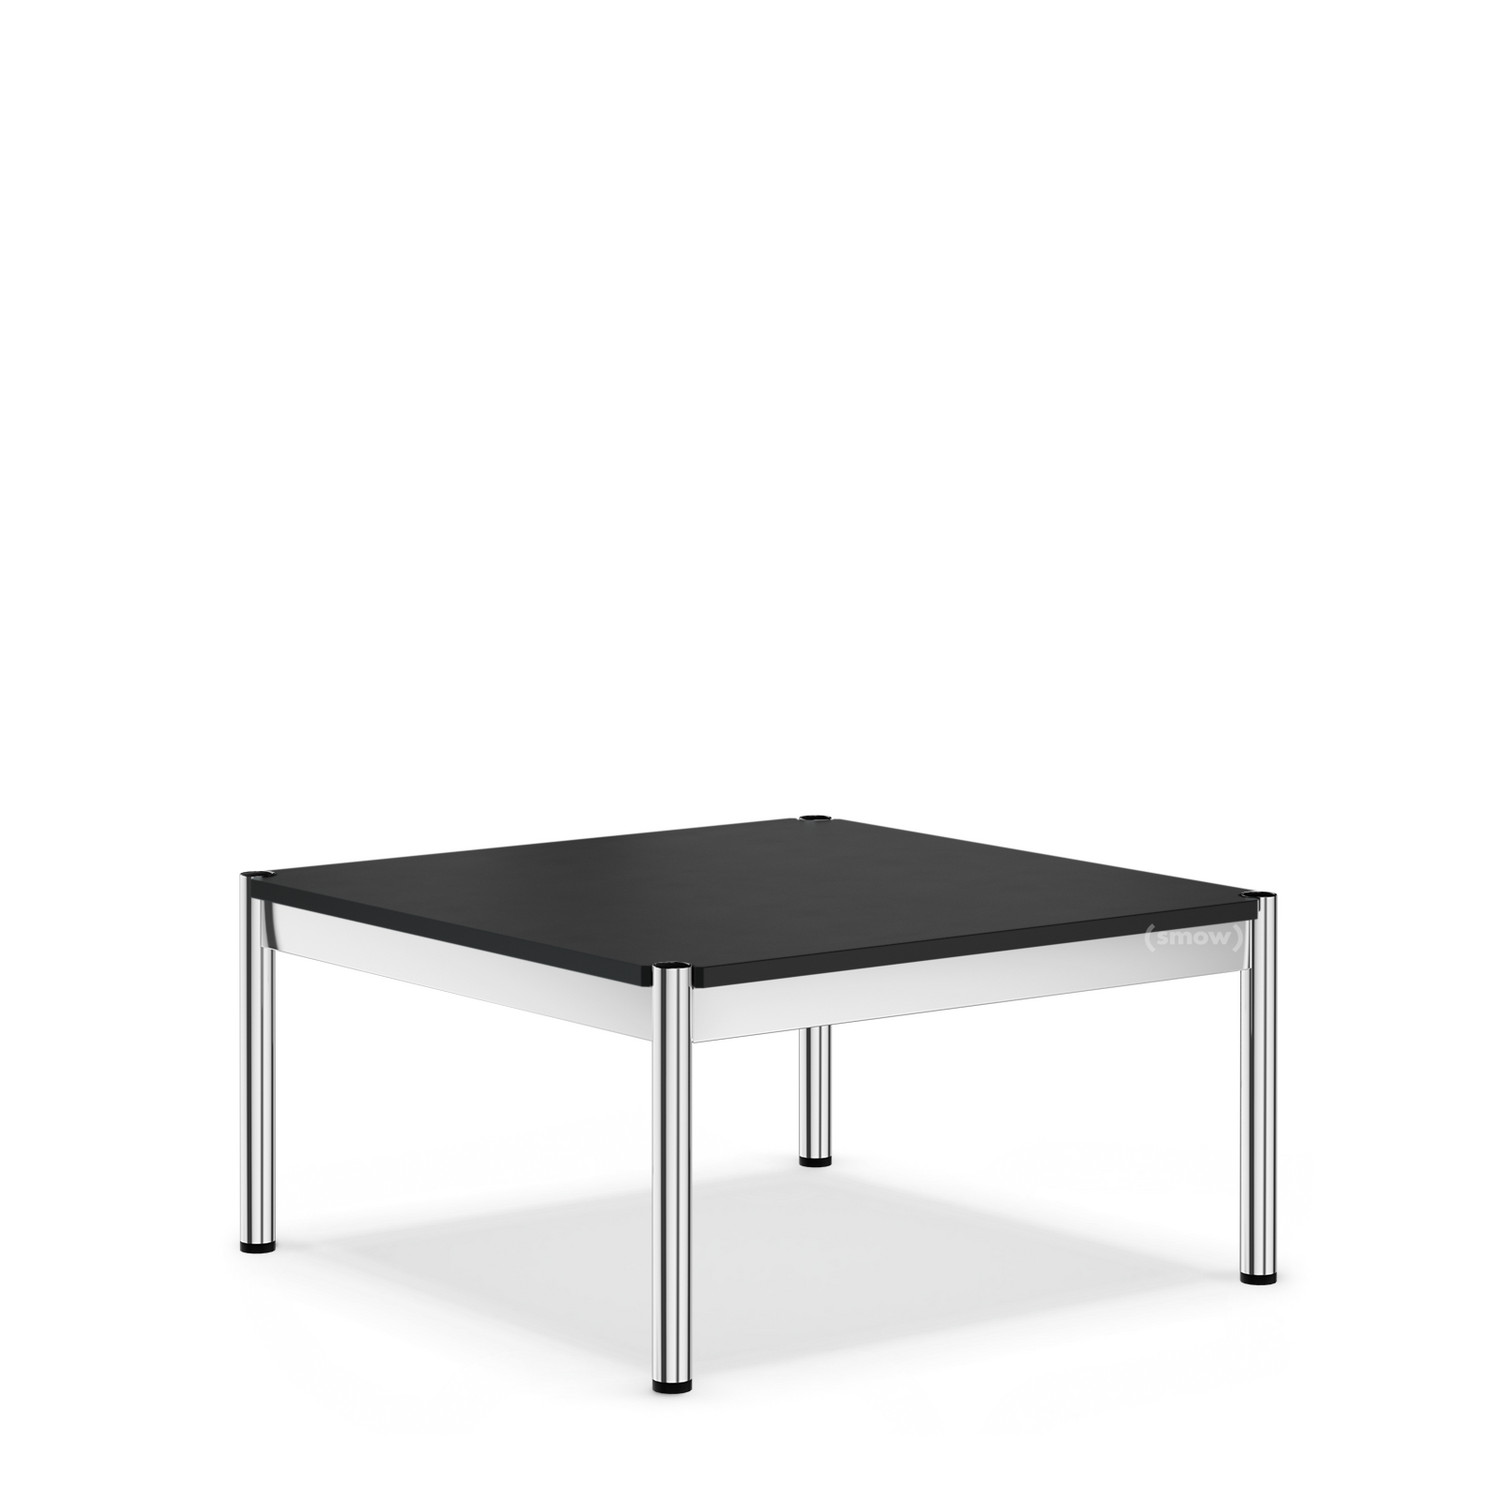 Couchtisch Montain Oak Usm Haller Coffee Table 75 X 75 Cm Linoleum Nero By Fritz